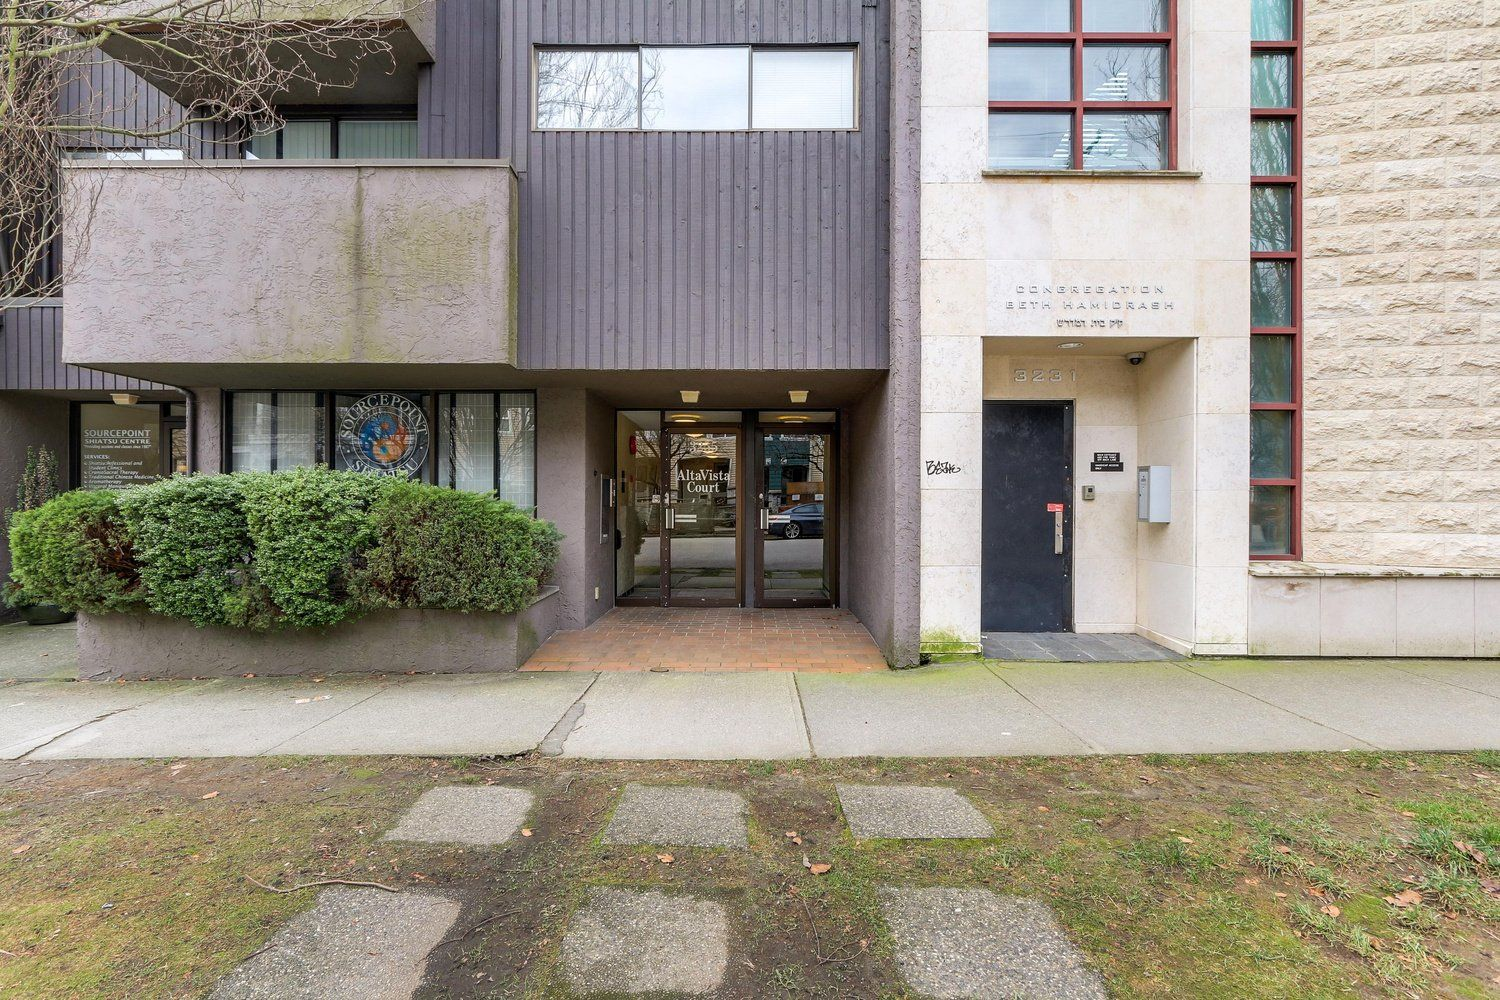 """Main Photo: 206 3255 HEATHER Street in Vancouver: Cambie Condo for sale in """"ALTA VISTA COURT"""" (Vancouver West)  : MLS®# R2484129"""